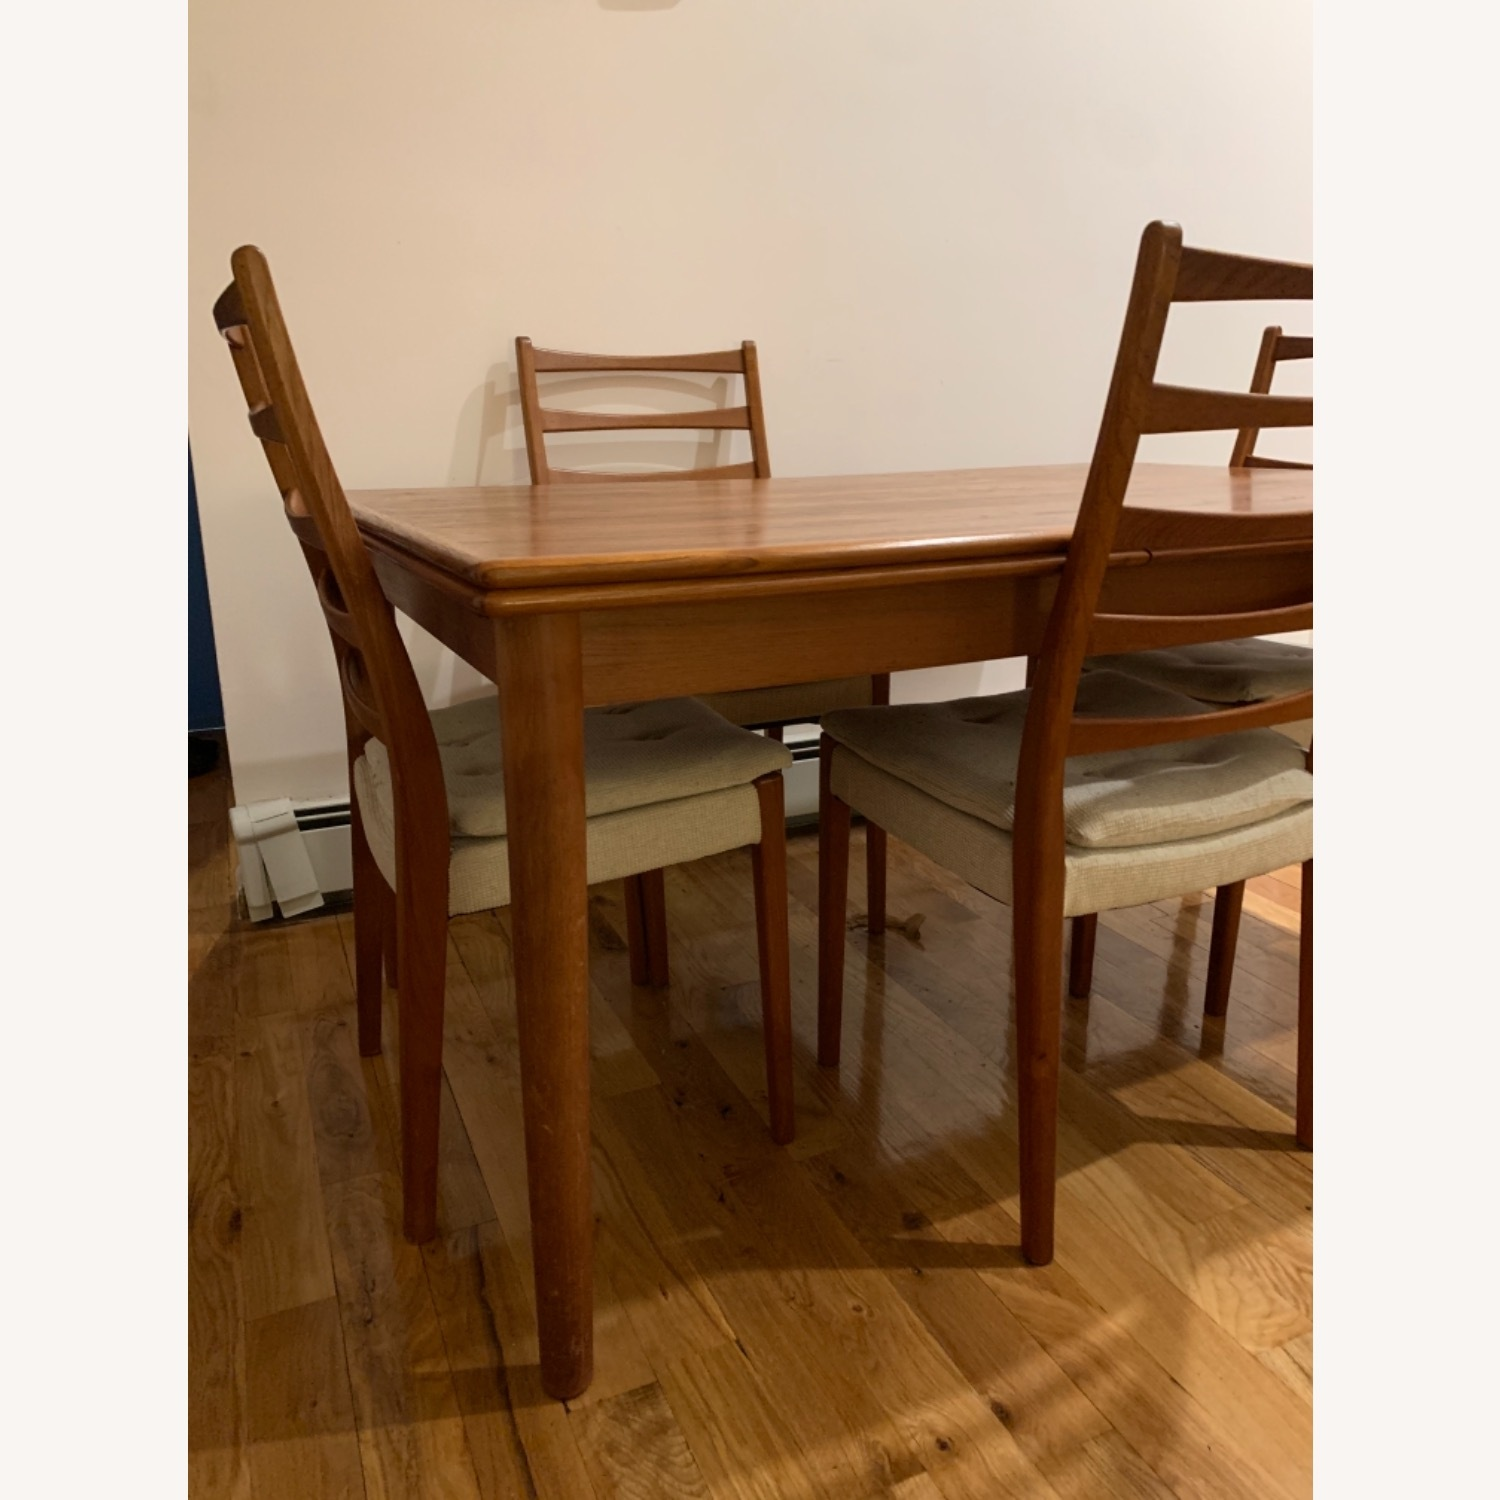 Mid Century Extendable Dining Table w/Four Chairs - image-3